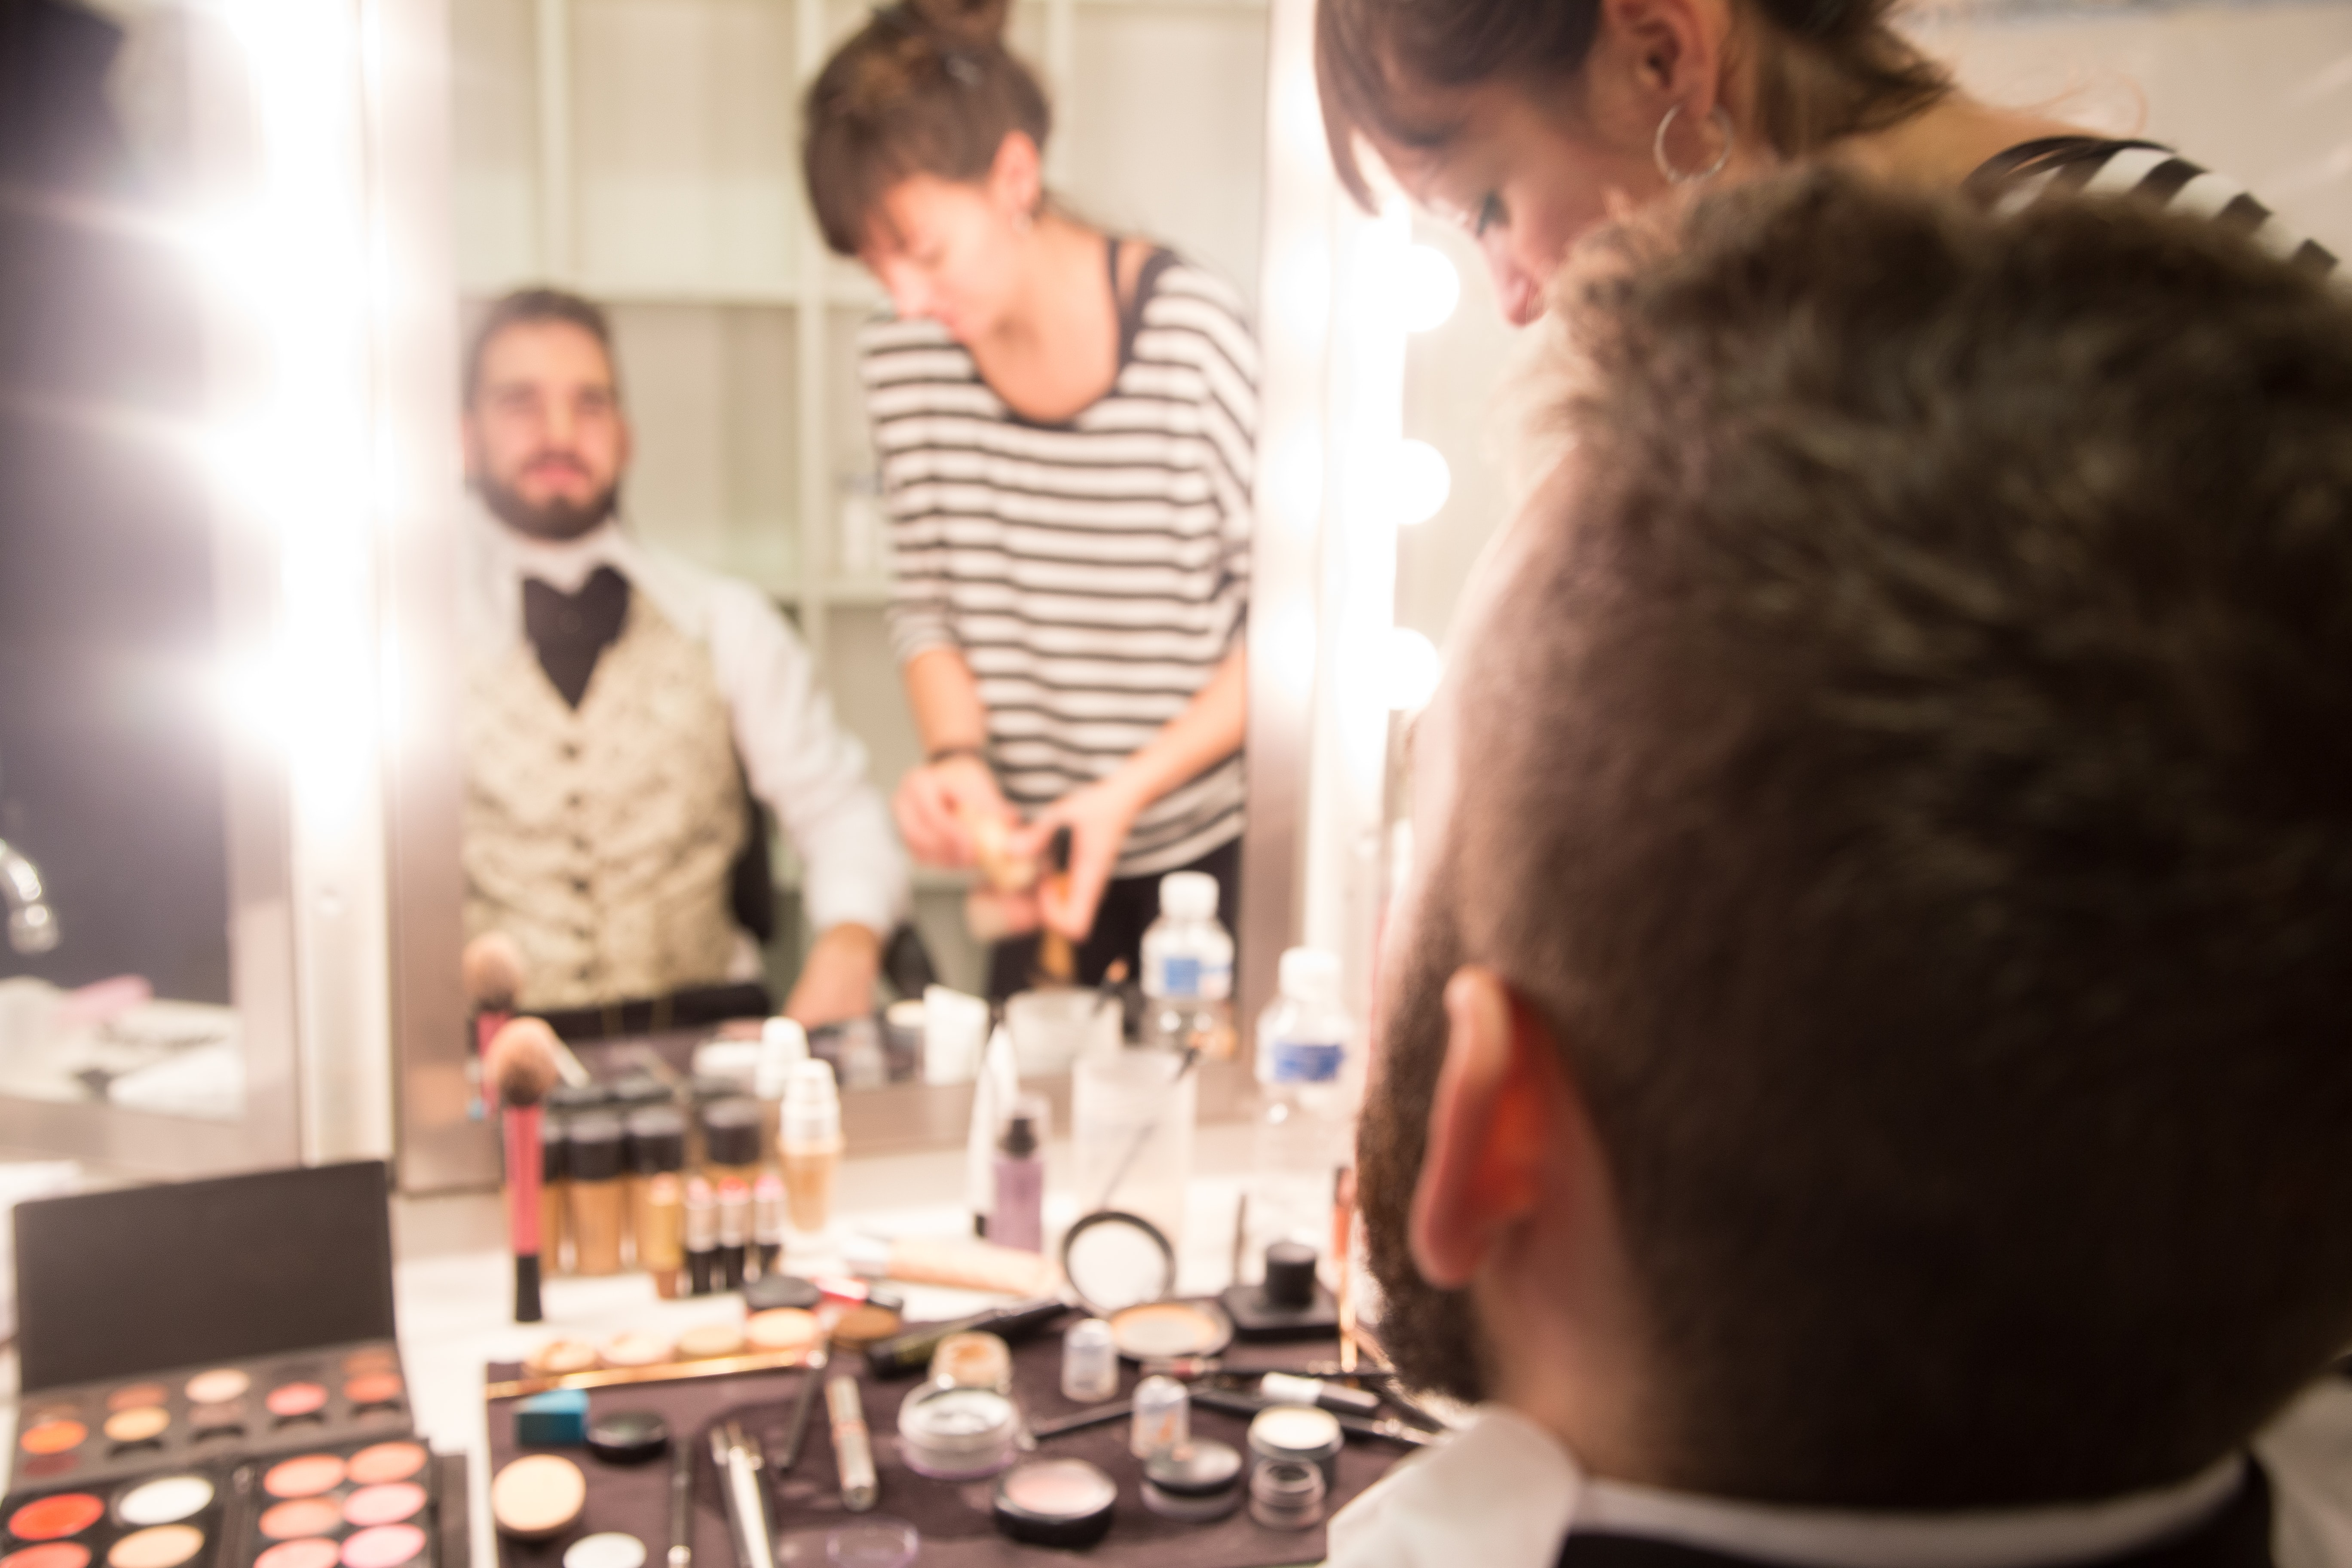 A professional actor in getting makeup applied